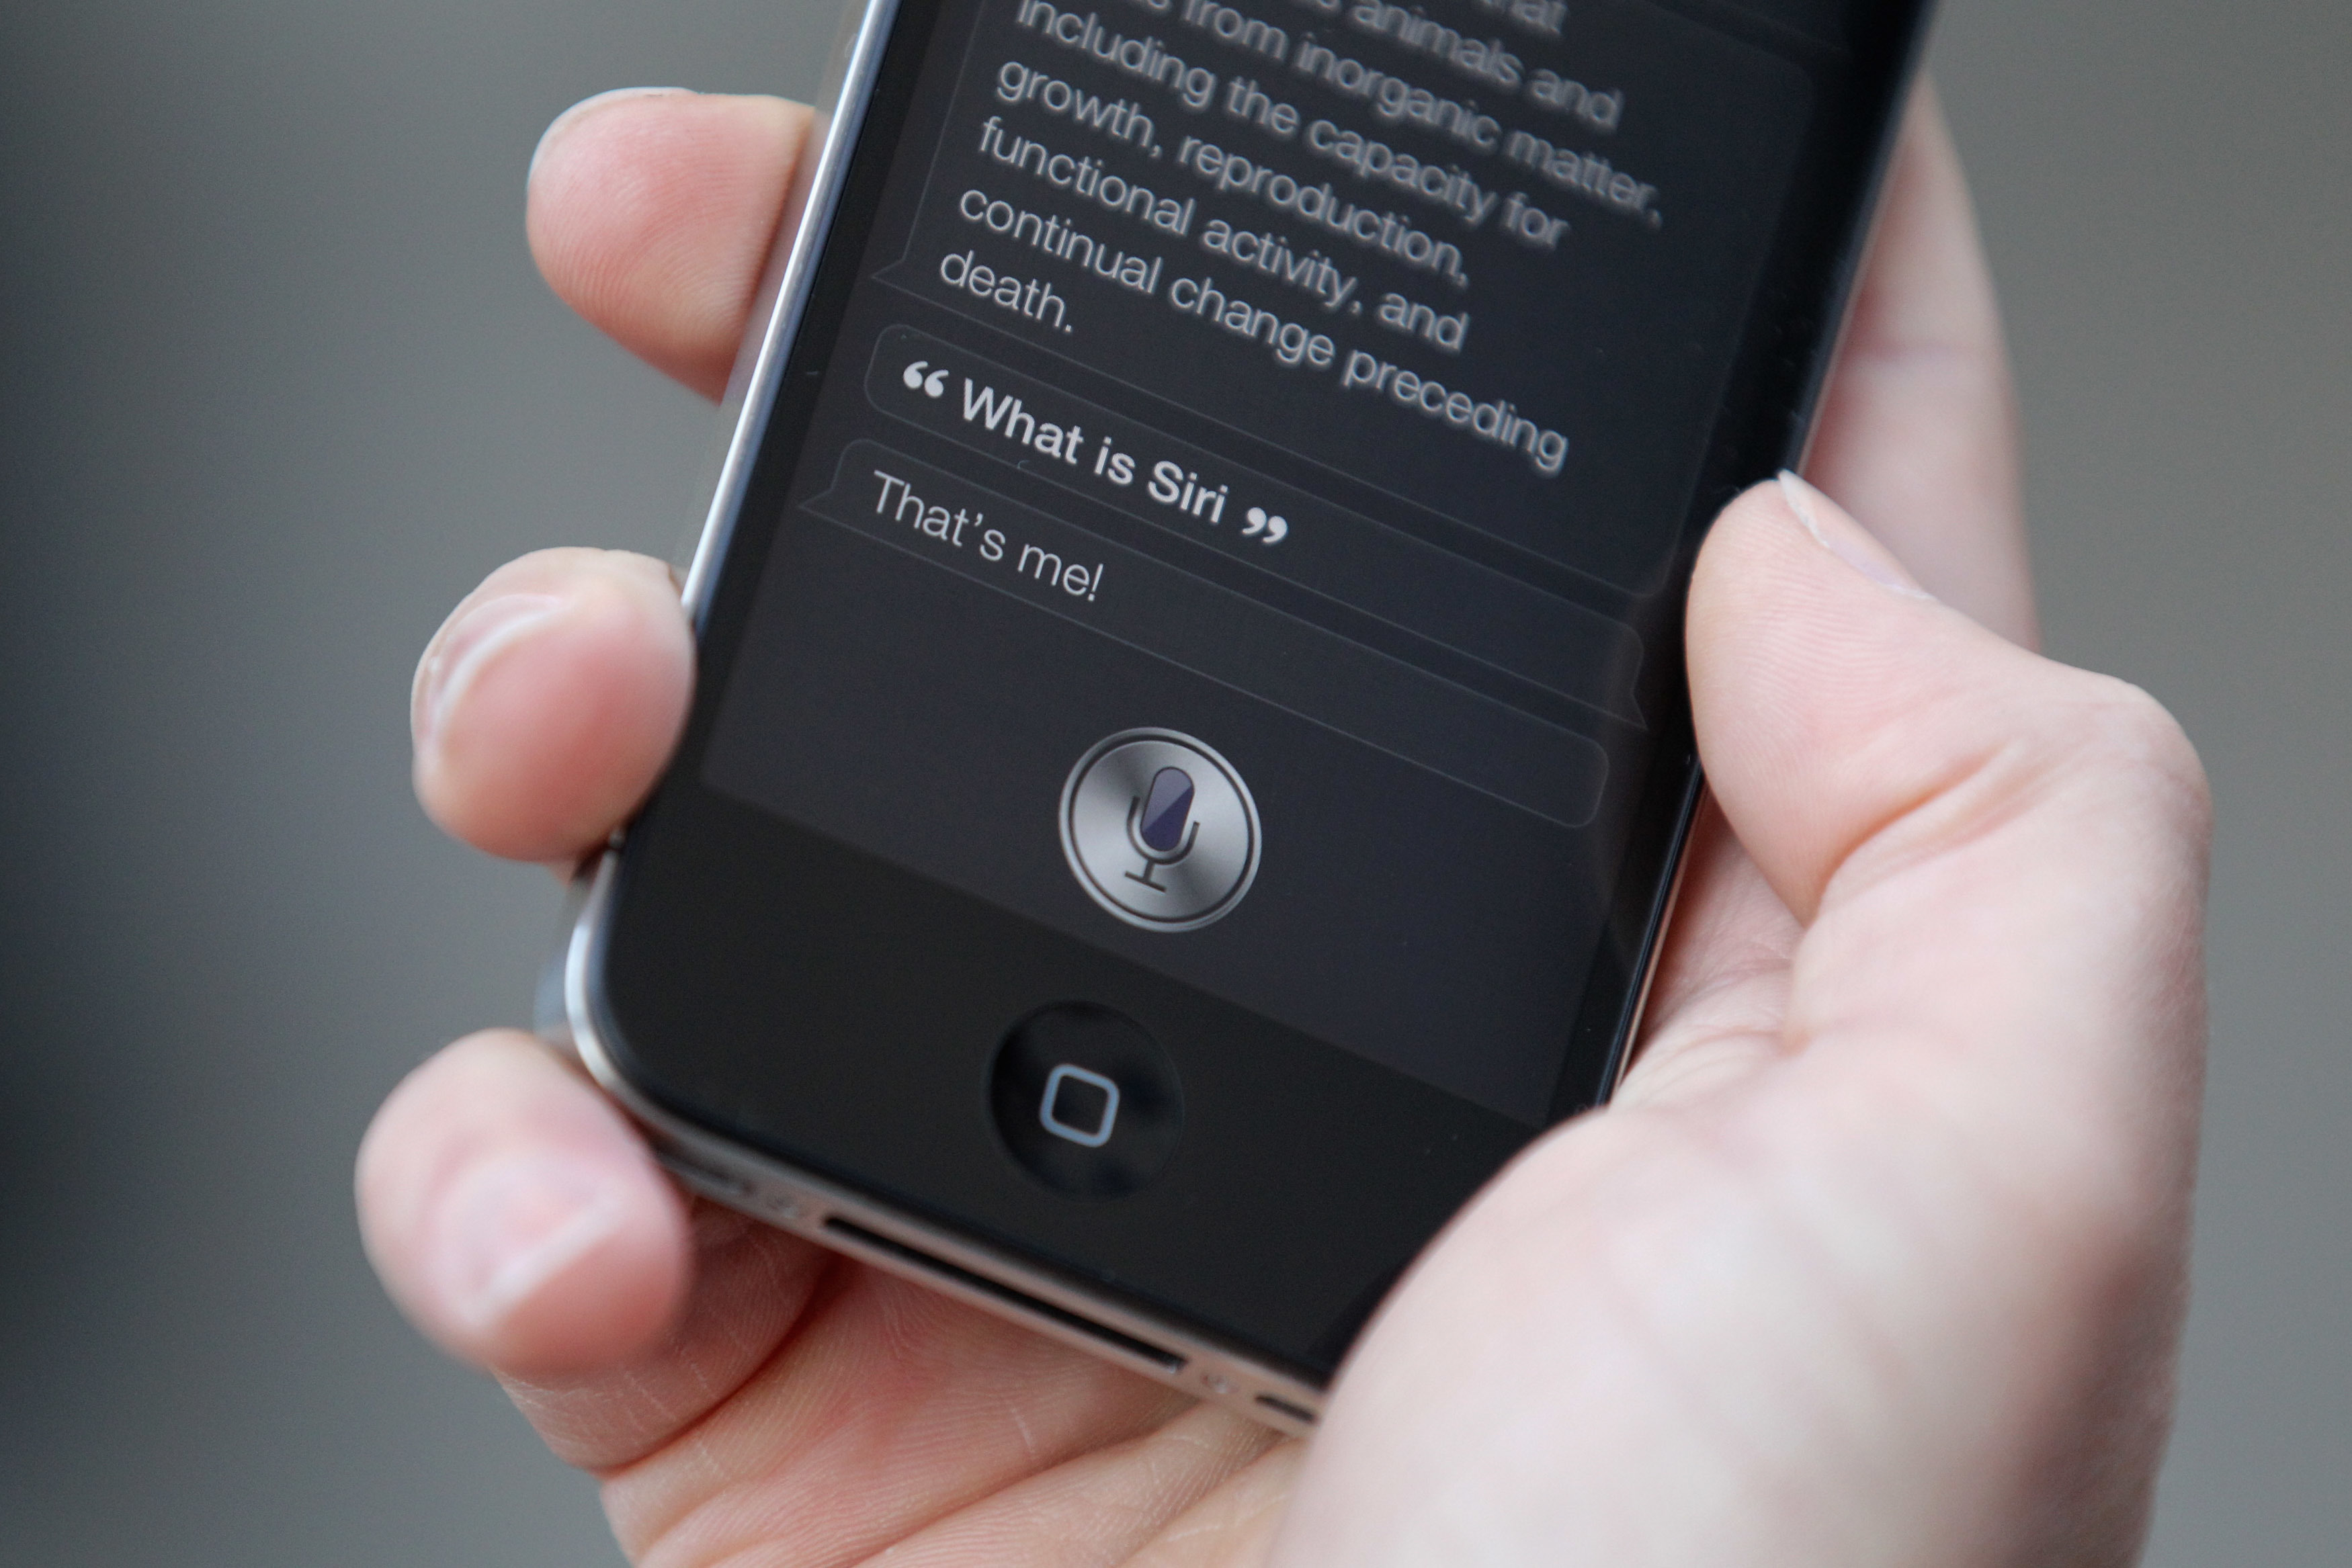 Siri in action on the iPhone 4S.